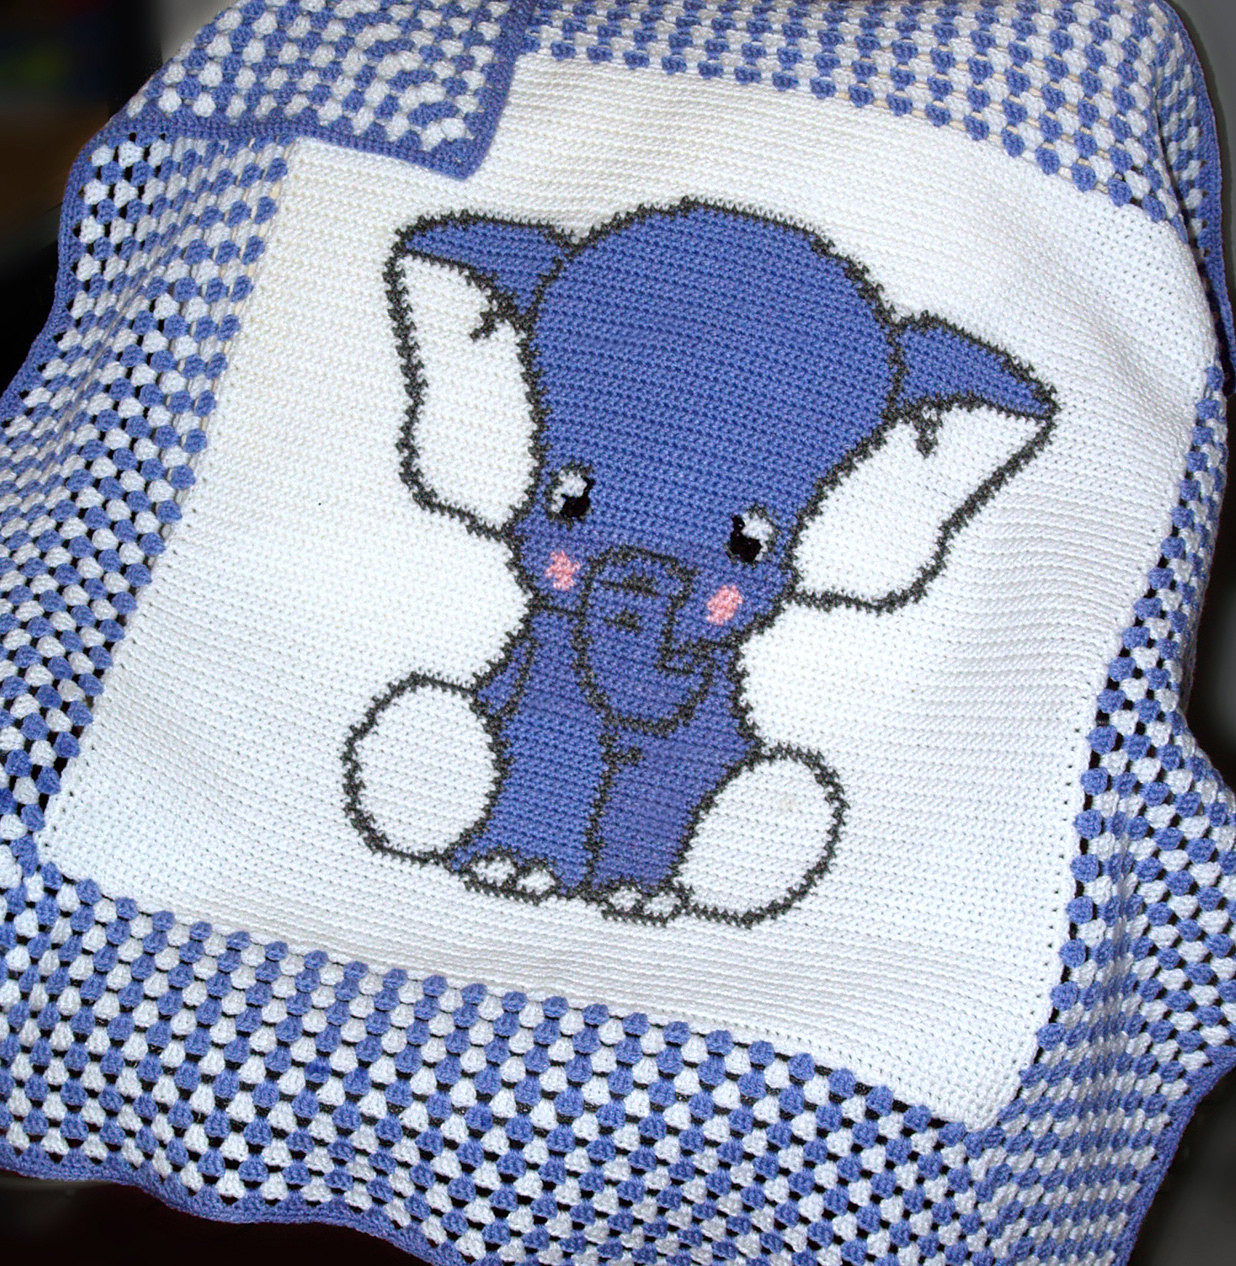 Crochet Elephant Blanket Unique Crochet Pattern Baby Blanket Pattern Elephant Crochet Of Awesome 44 Ideas Crochet Elephant Blanket